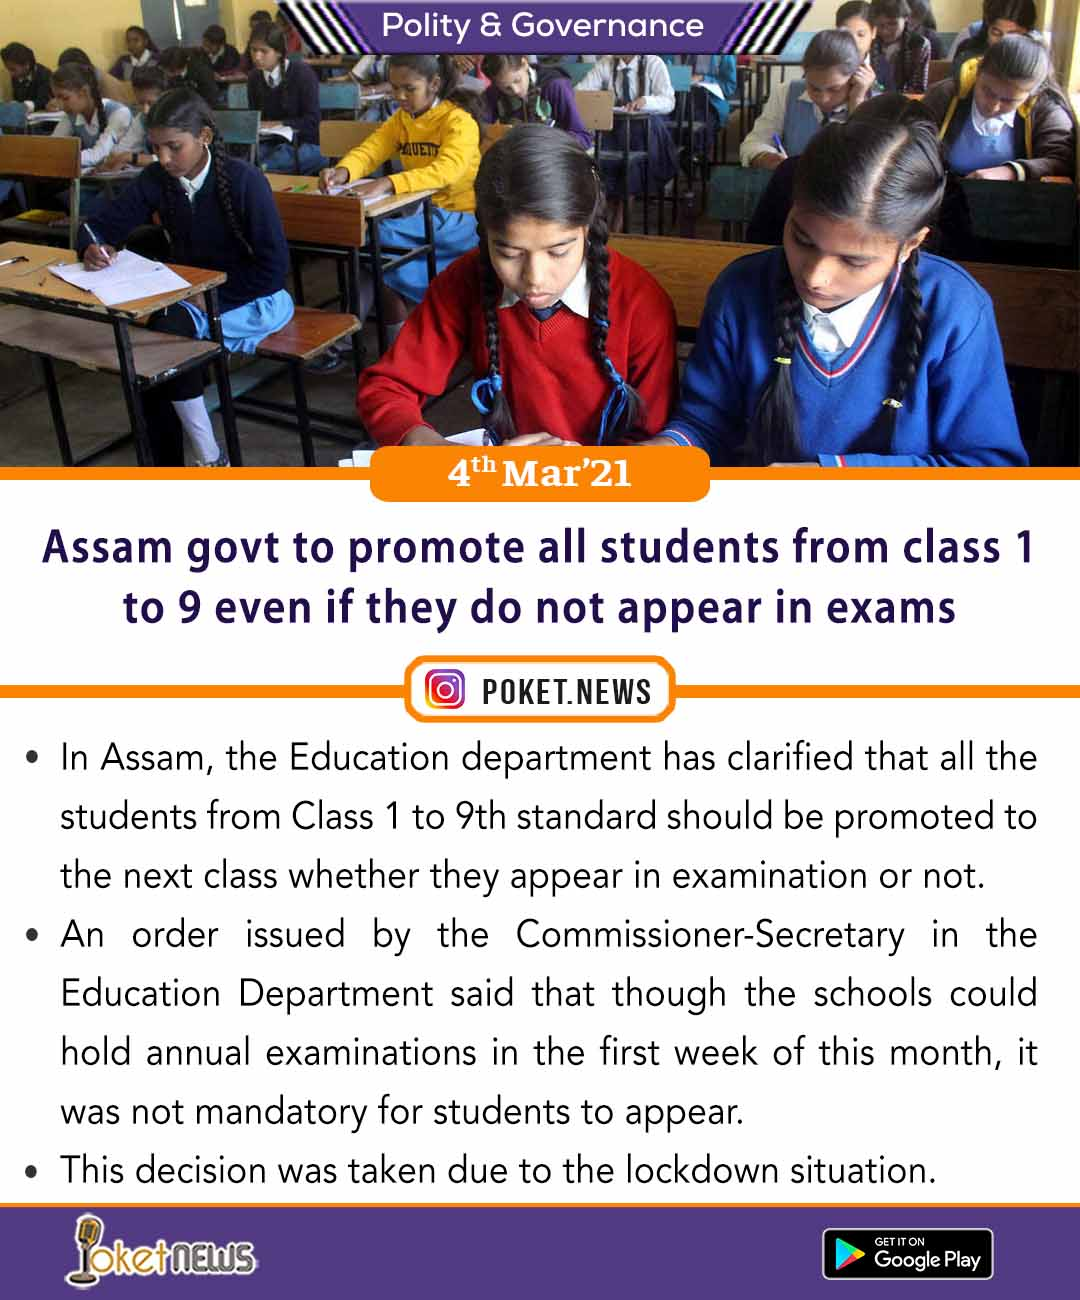 Assam govt to promote all students from class 1 to 9 even if they do not appear in exams